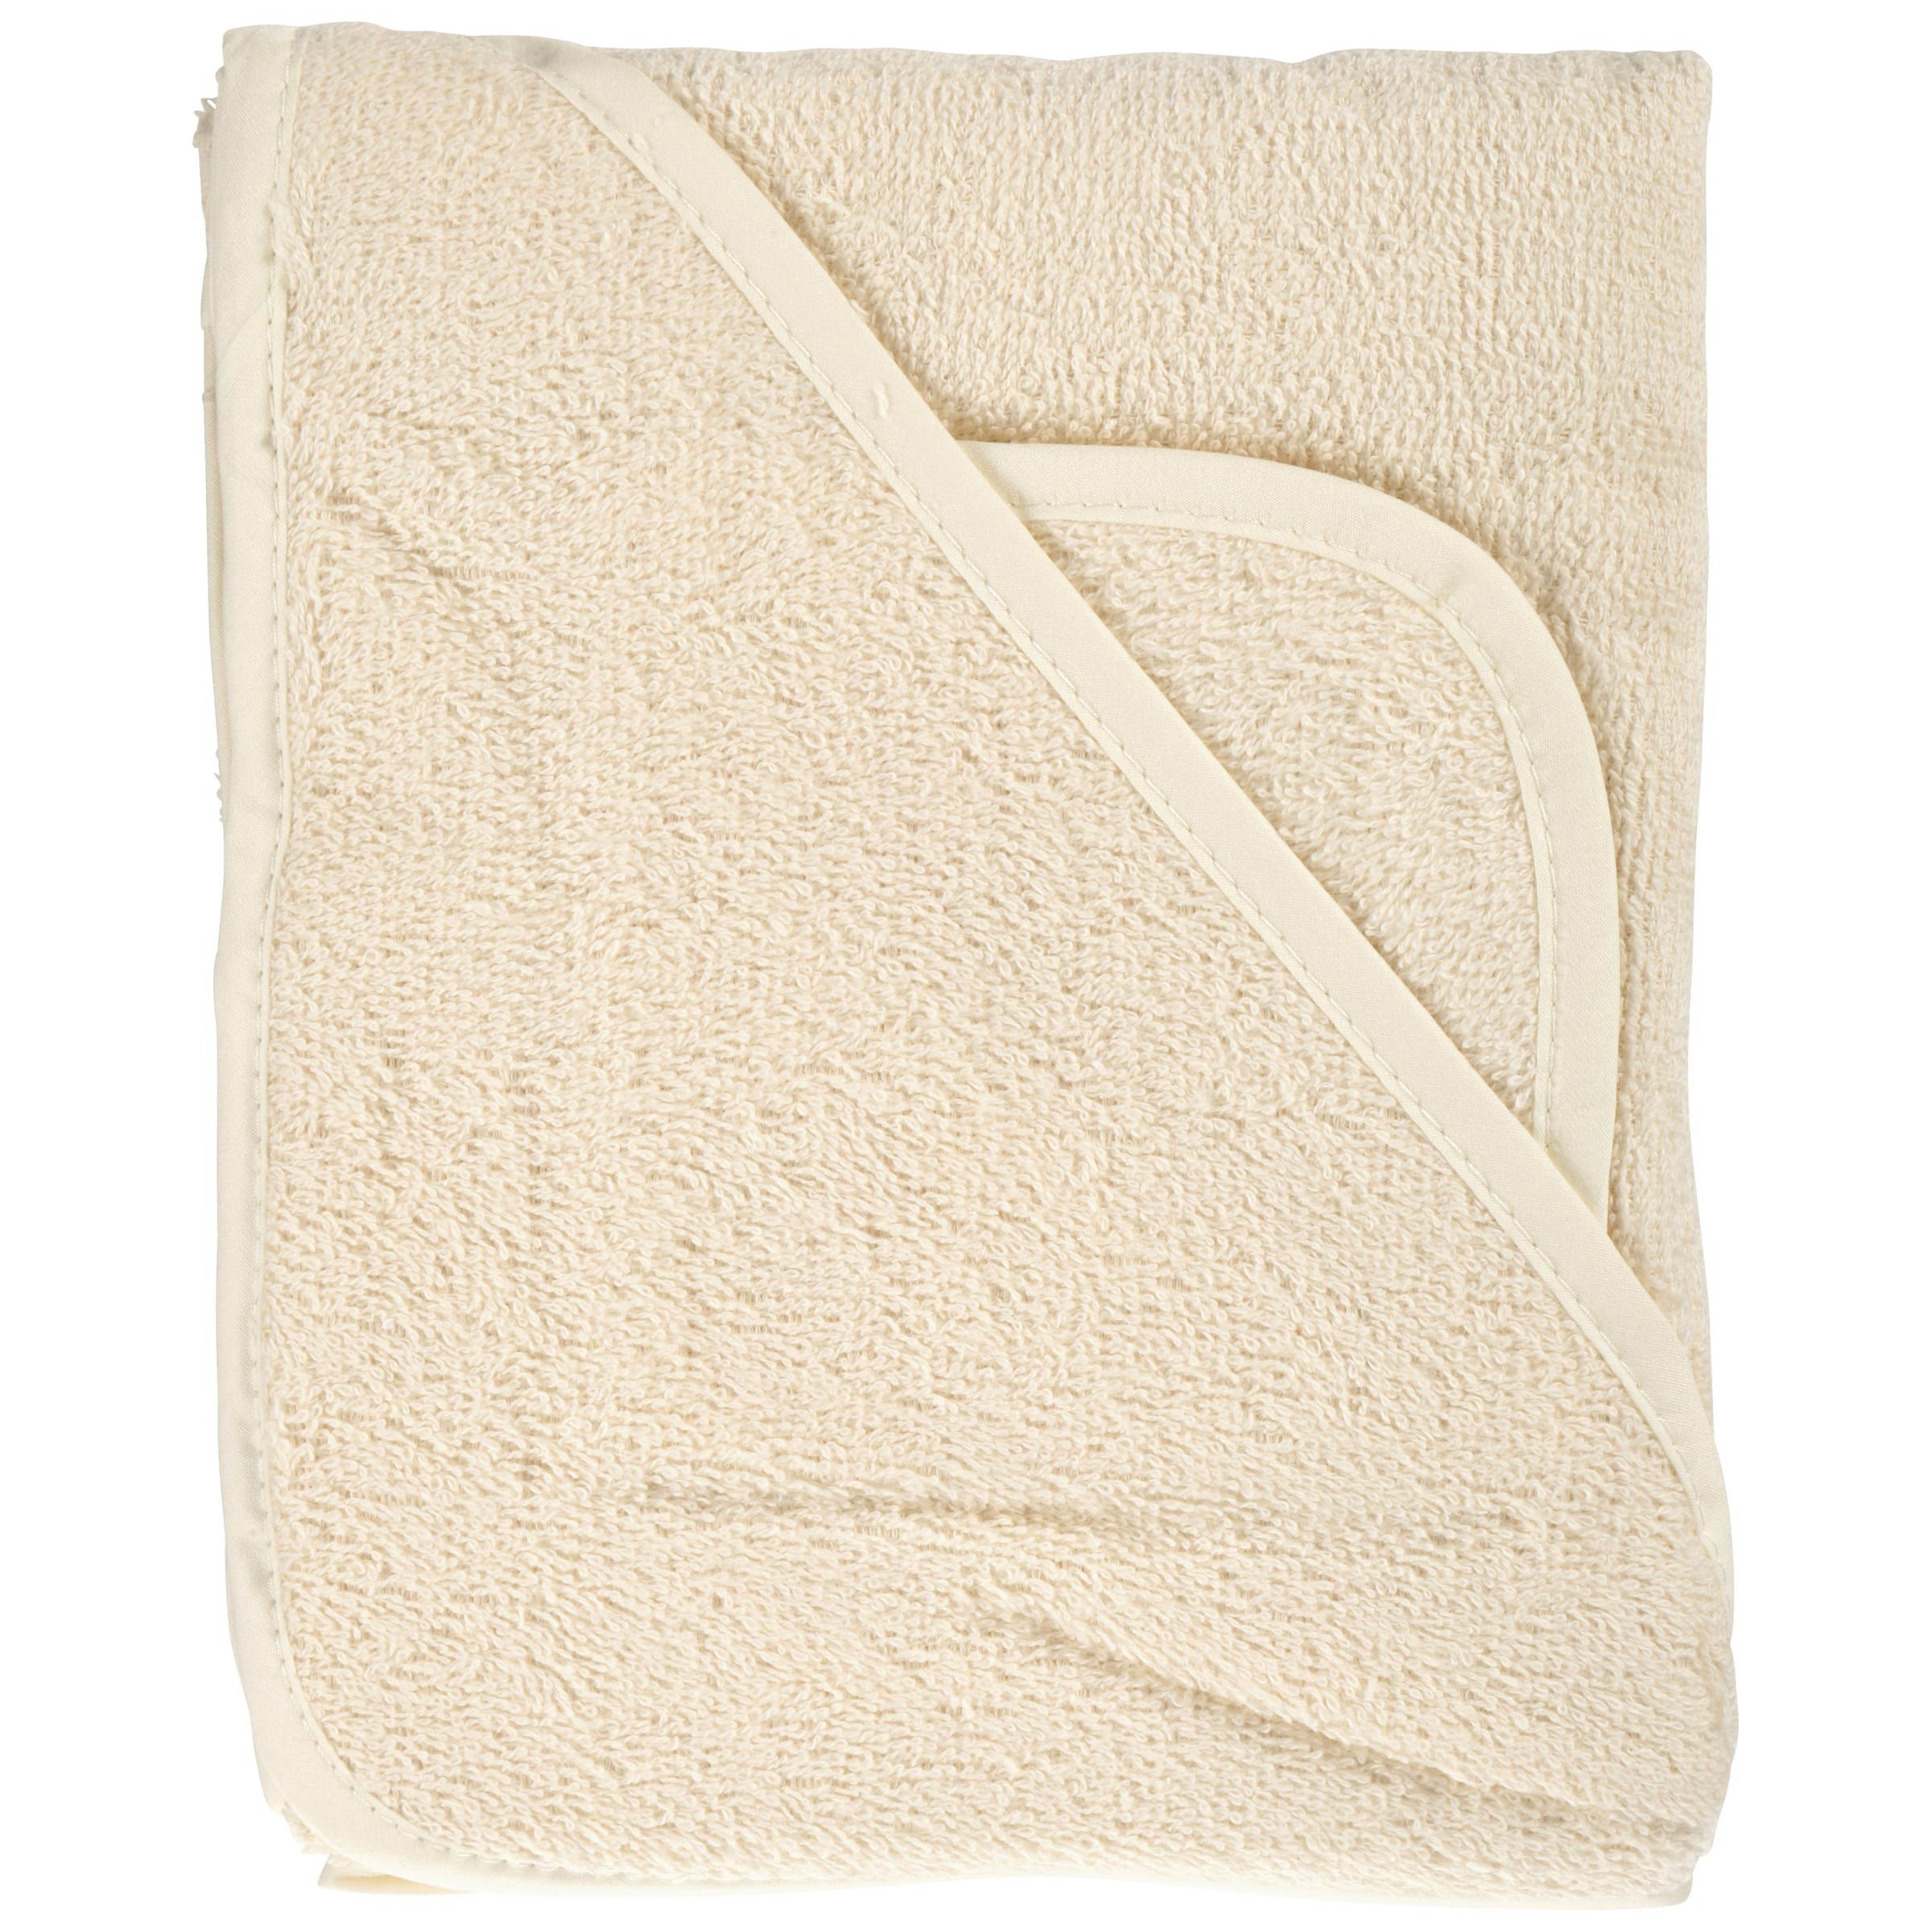 TL Care® 100% Cotton Terry Hooded Towel & Wash Cloth Set 2 pc Pack